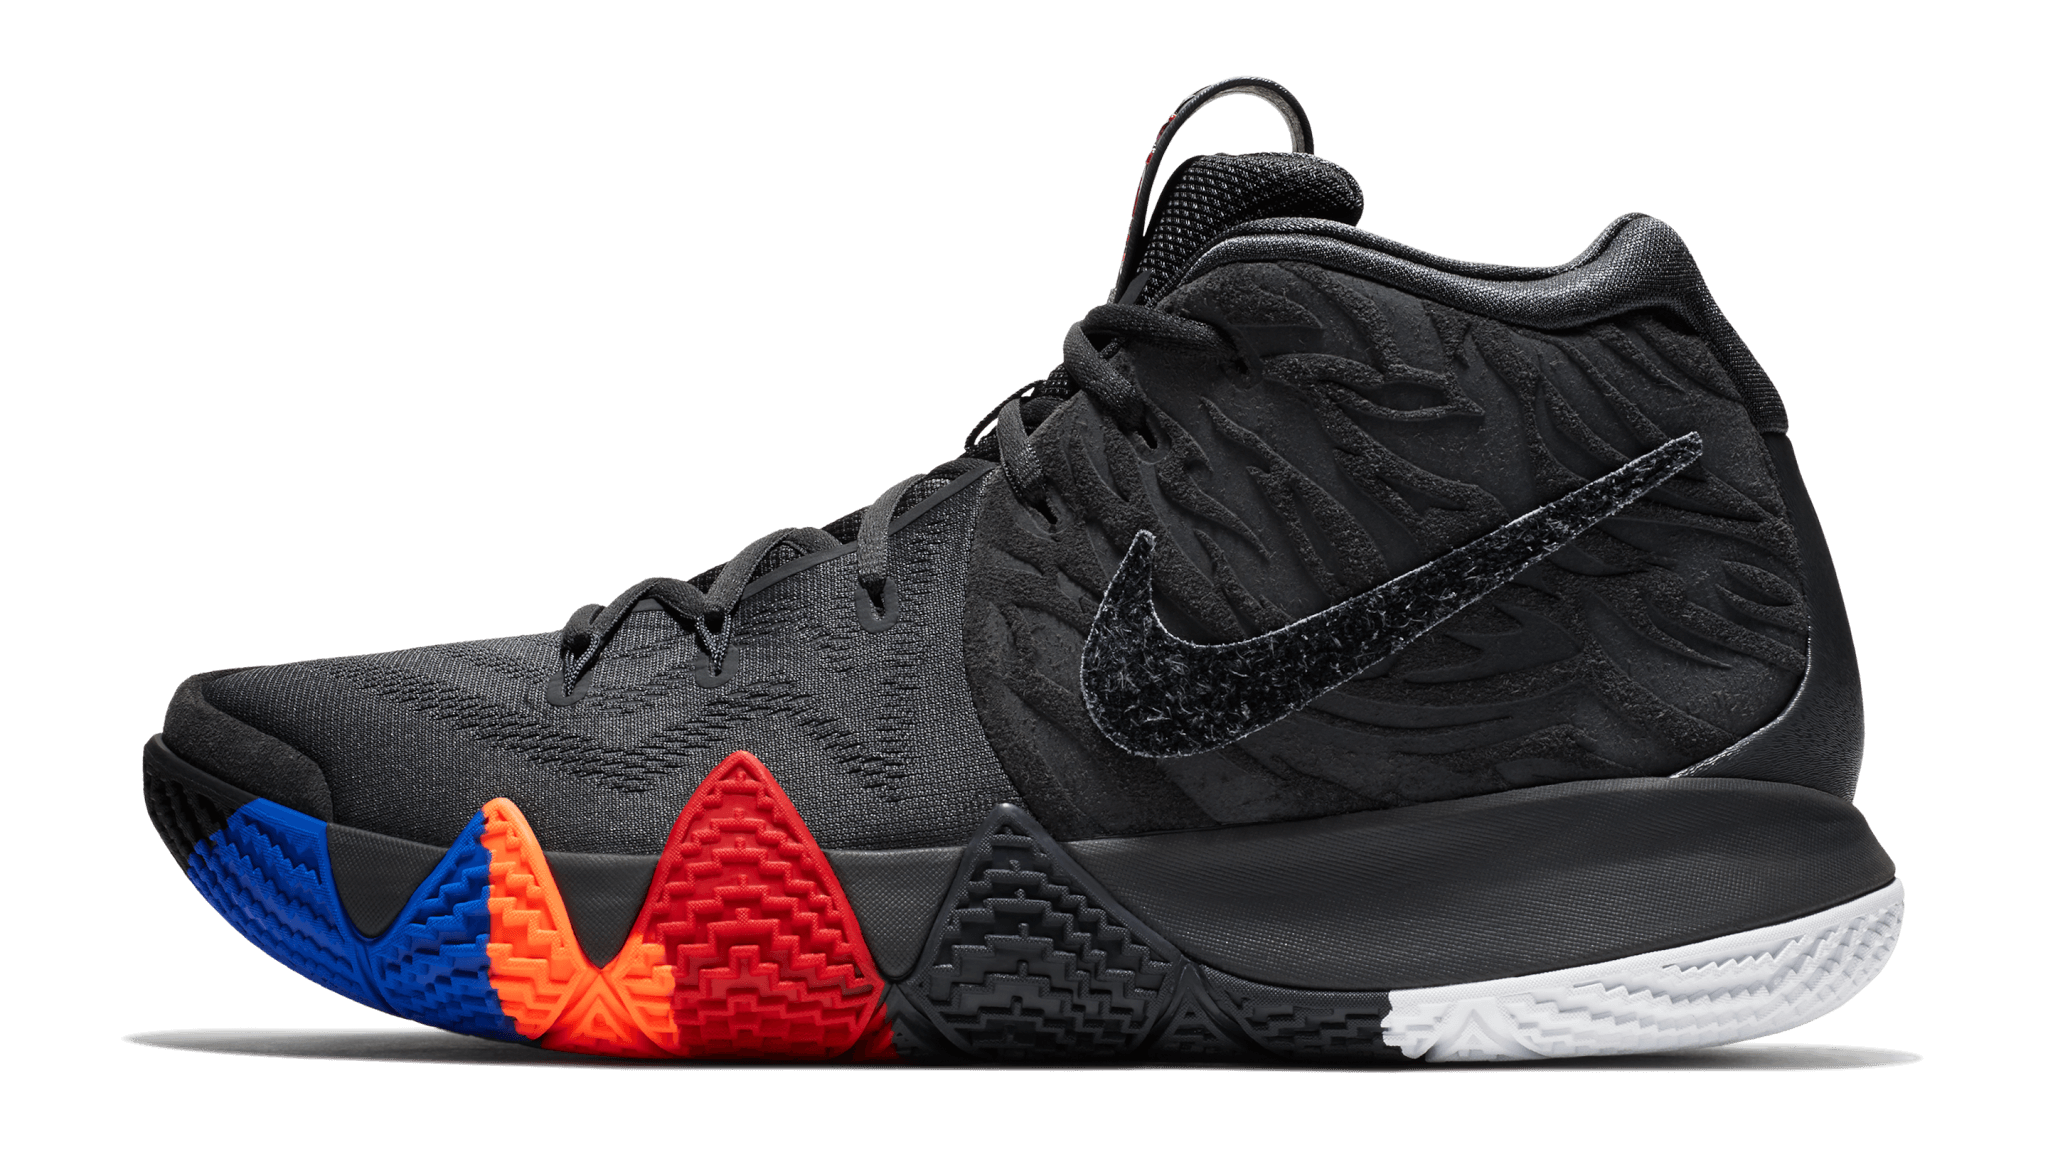 a40b76067f9f Nike Kyrie 4 Performance Review